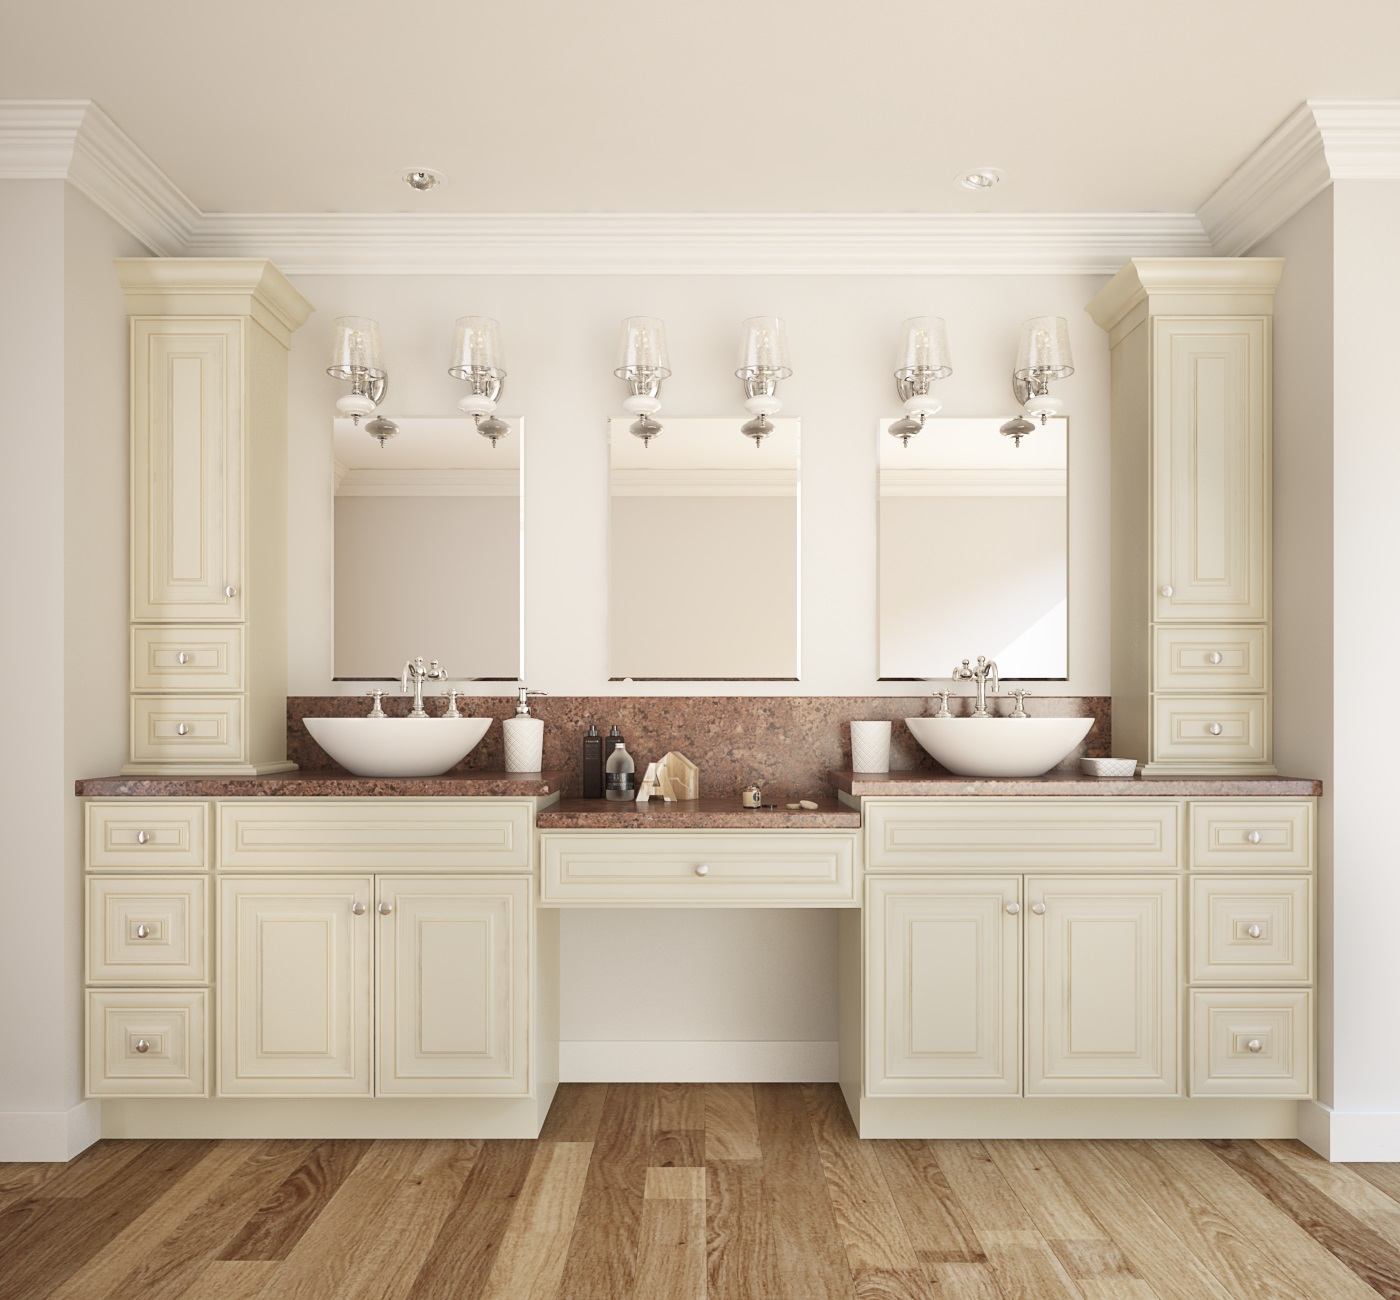 French%2520Vanilla%2520Glaze%2520Bathroom%2520Vanities